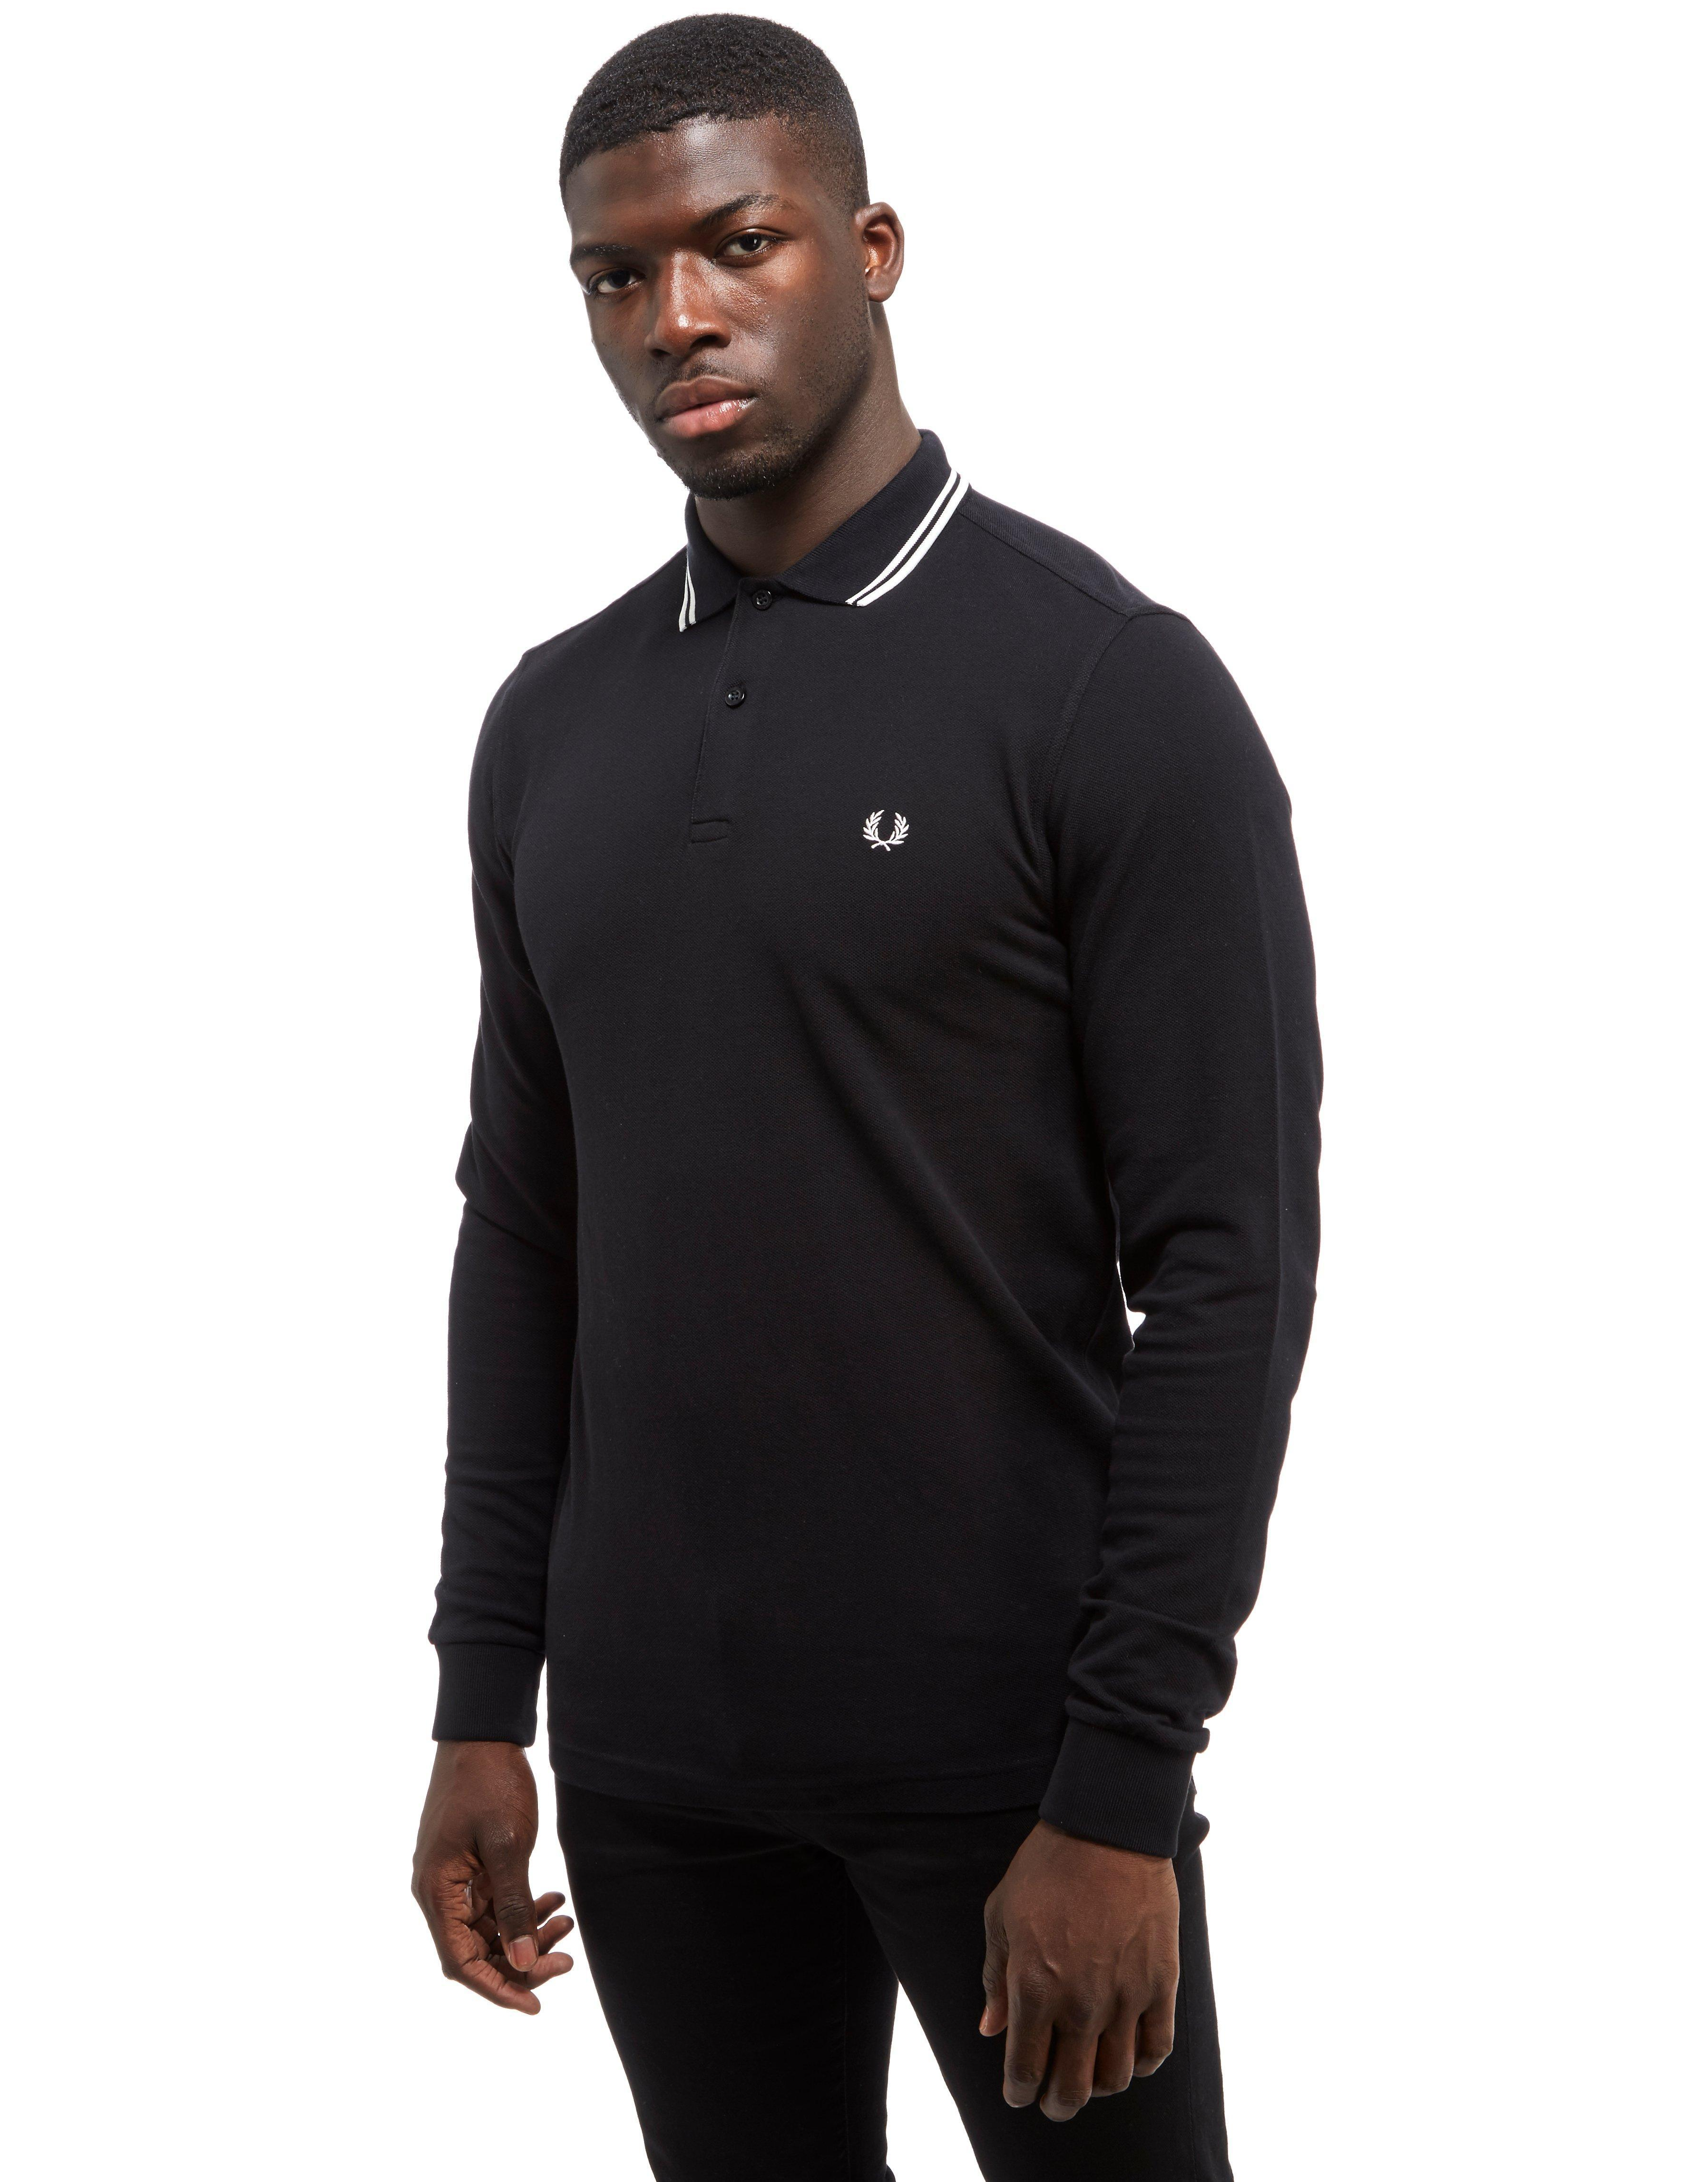 lyst fred perry twin tip long sleeve polo shirt in black for men. Black Bedroom Furniture Sets. Home Design Ideas